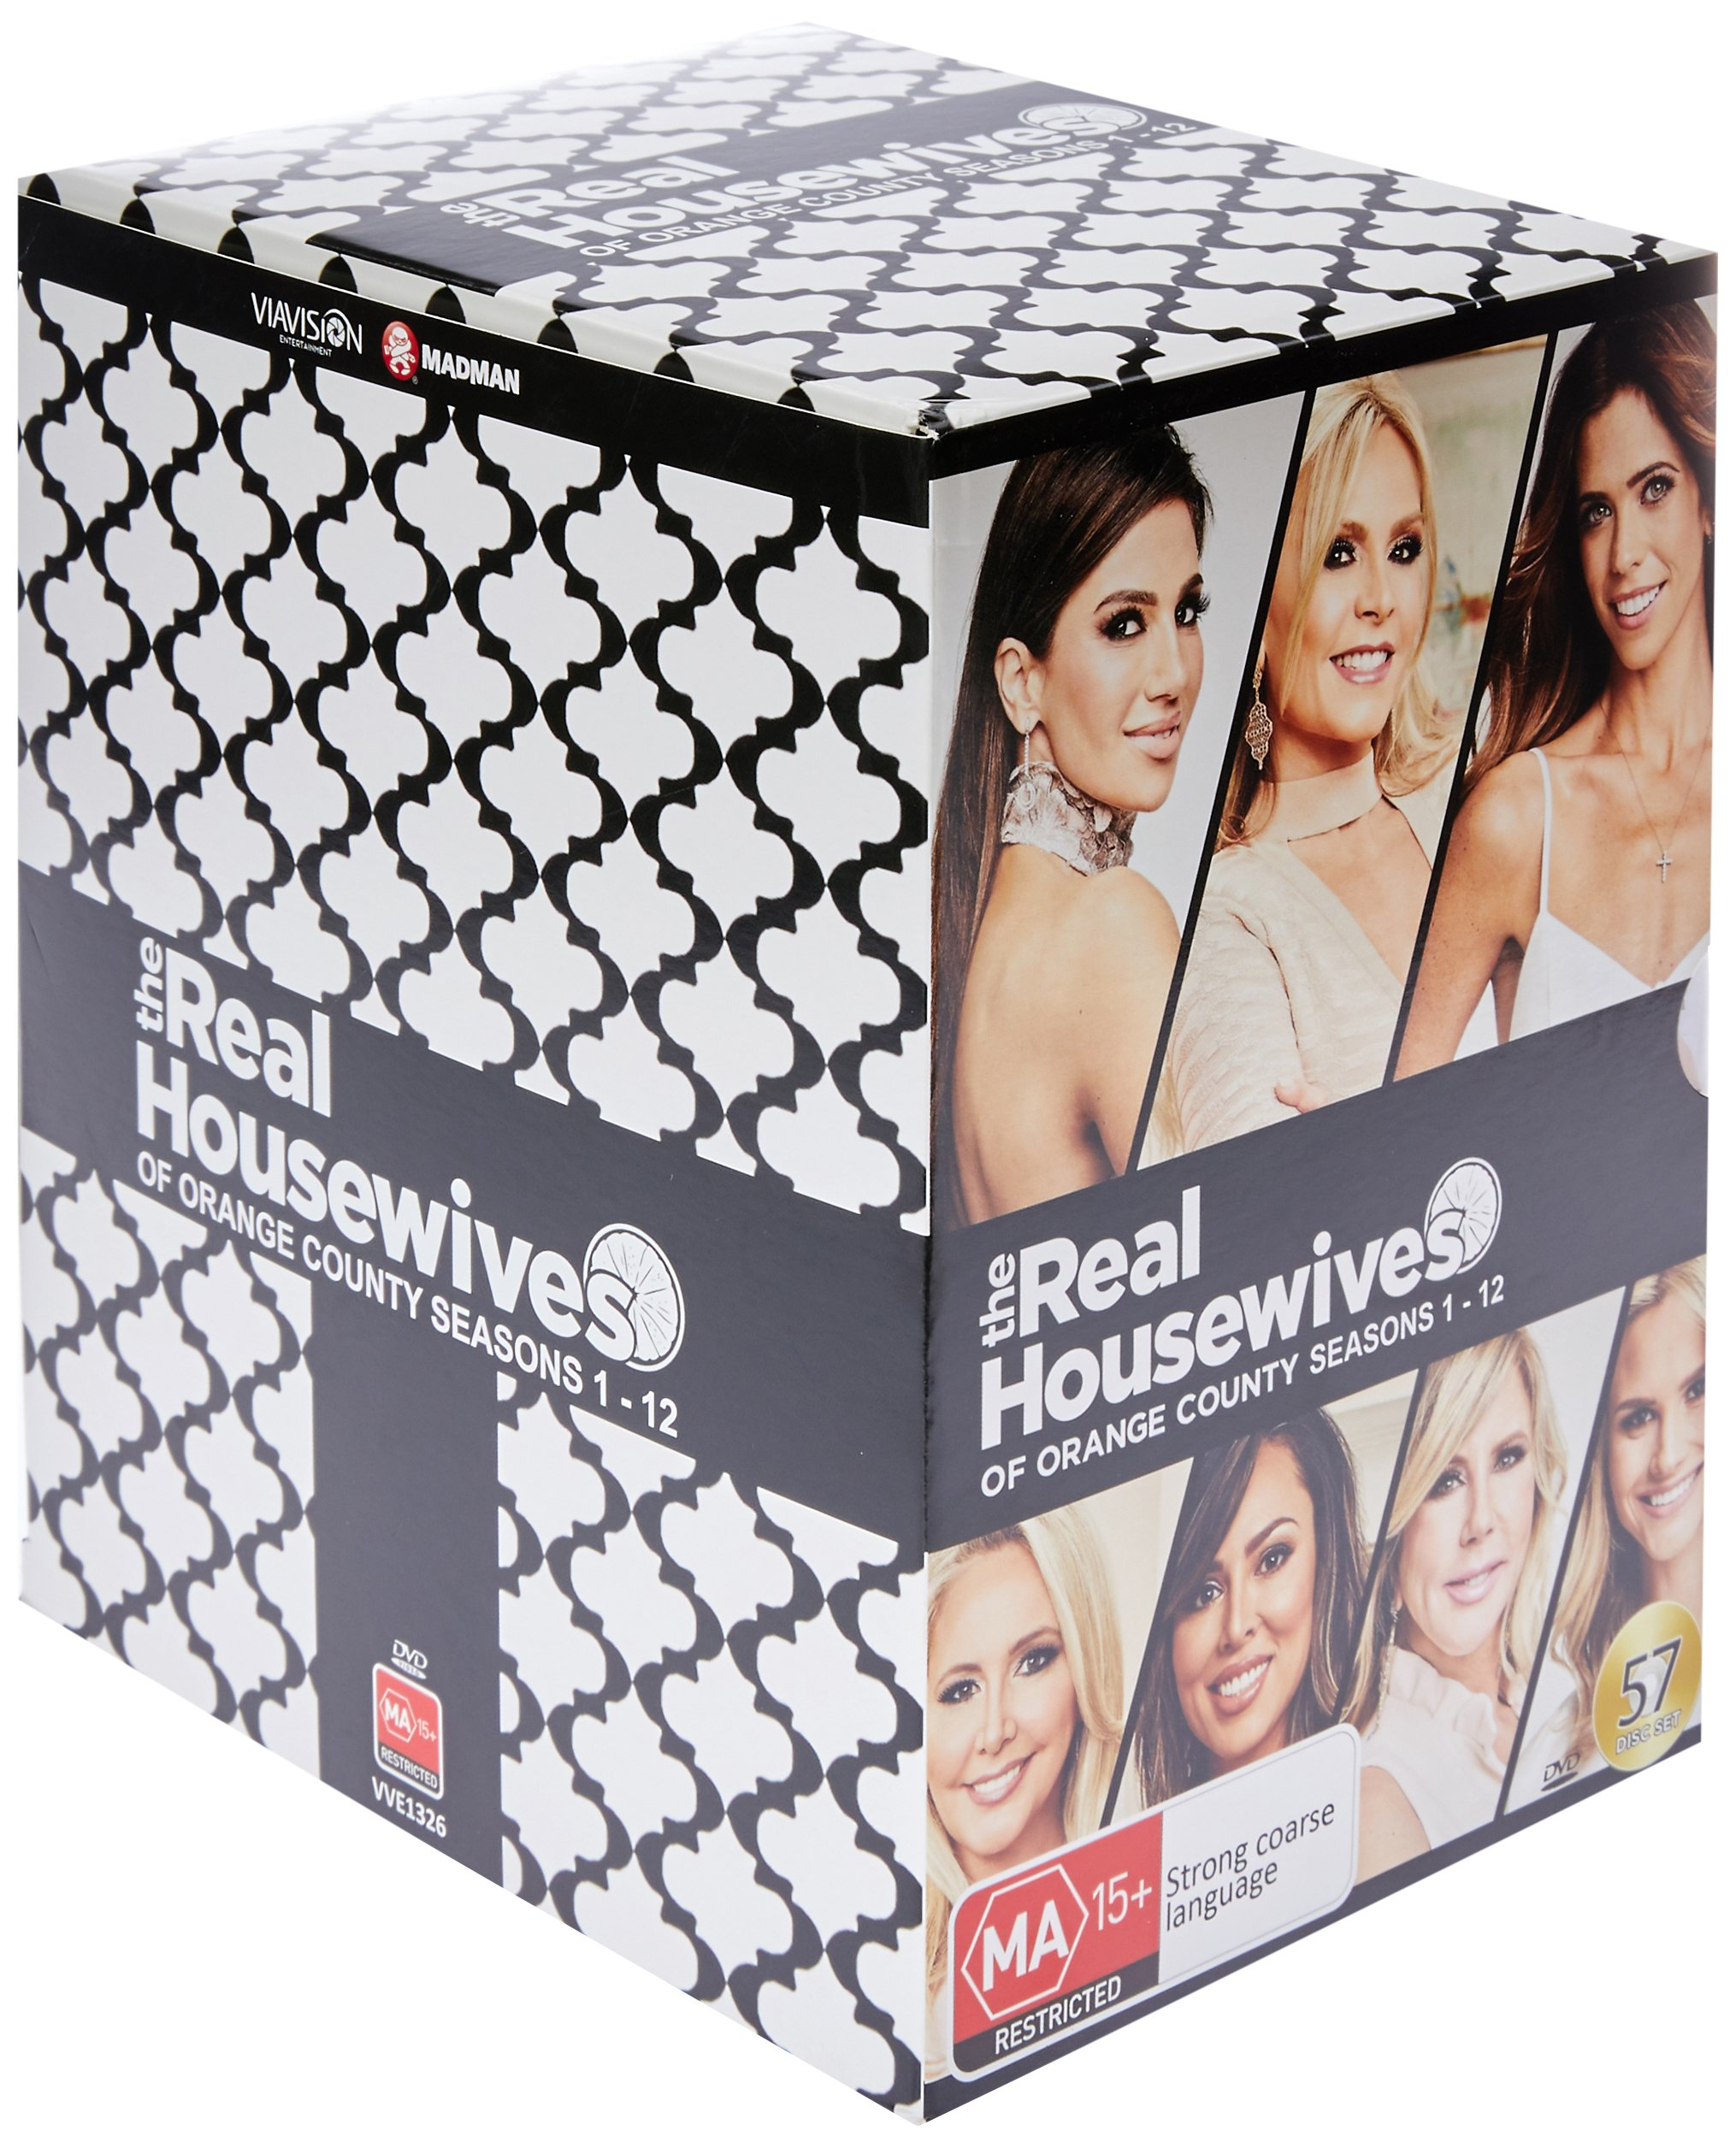 DVD : Real Housewives Of Orange County: Seasons 1-12 (Boxed Set, Australia - Import, NTSC Region 0, 52PC)